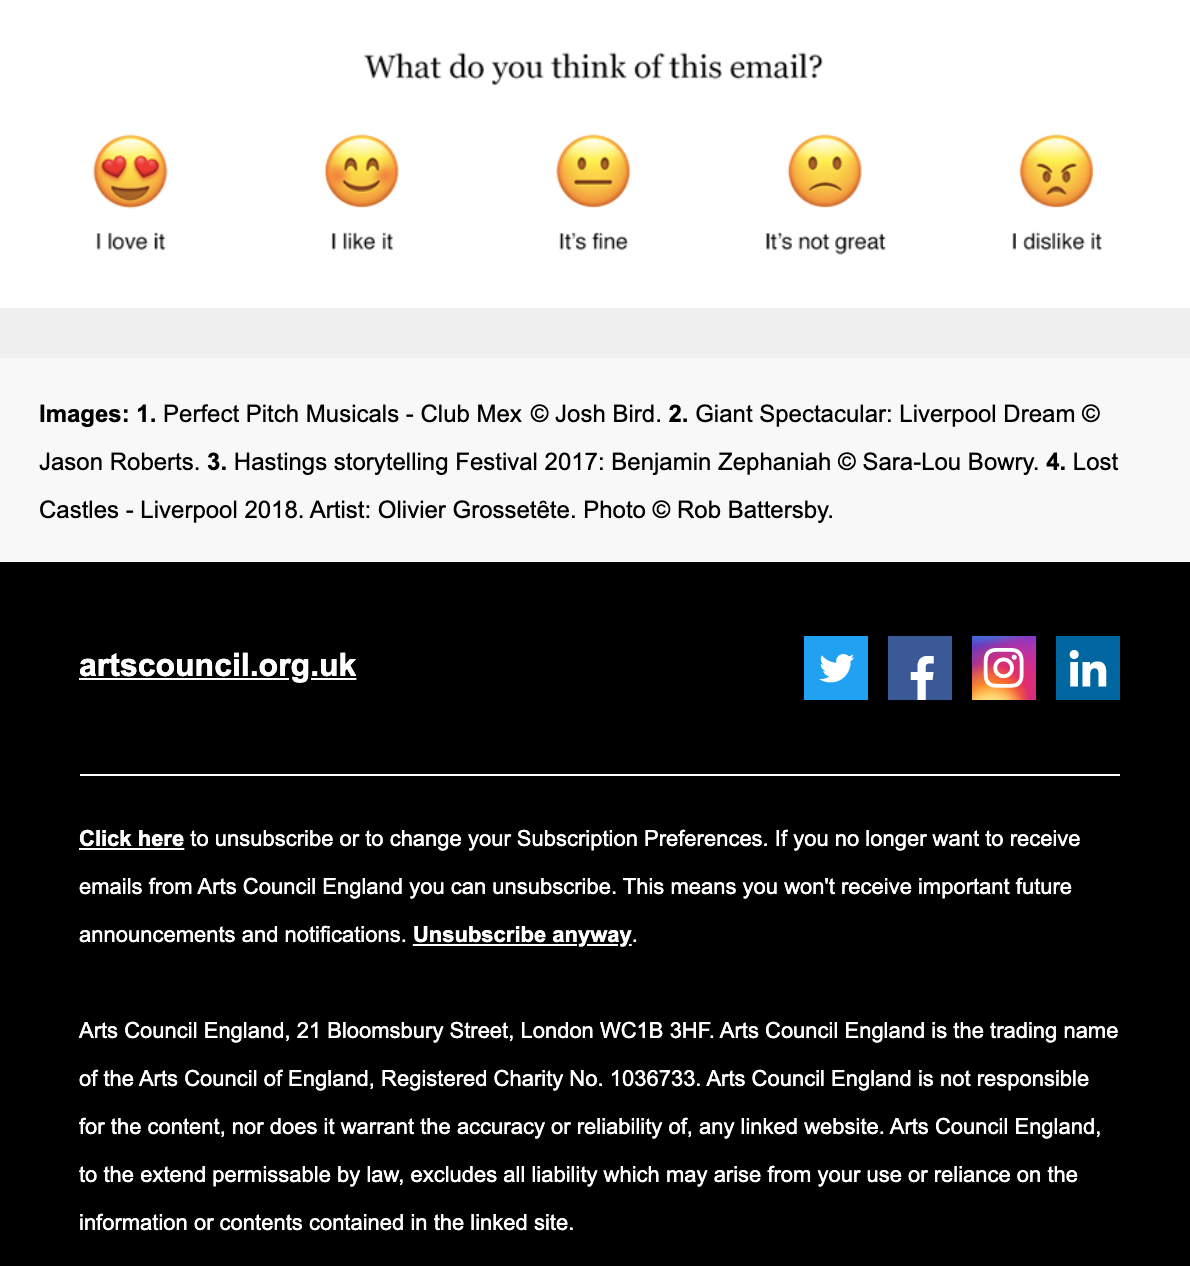 The final part of ACE's welcome email  features an embedded survey asking readers to rate the email. It also includes links to their social media platforms.